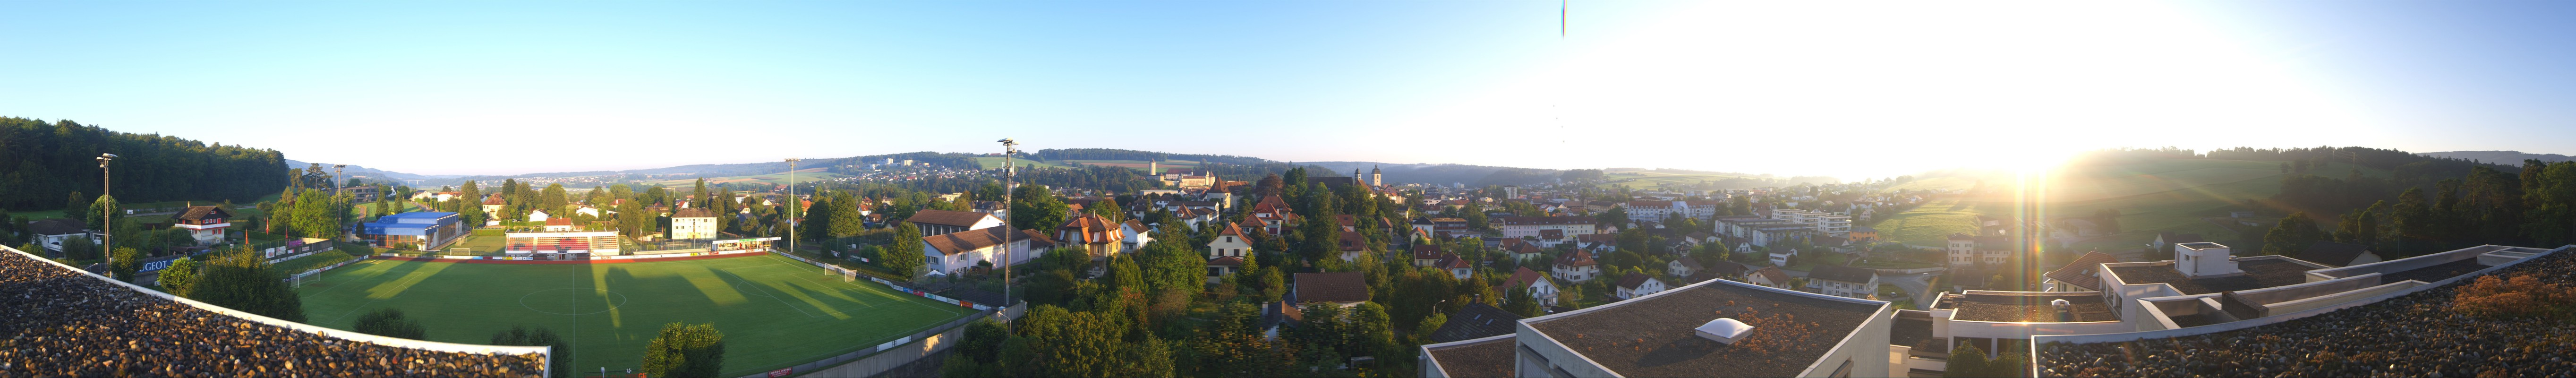 Porrentruy Panorama